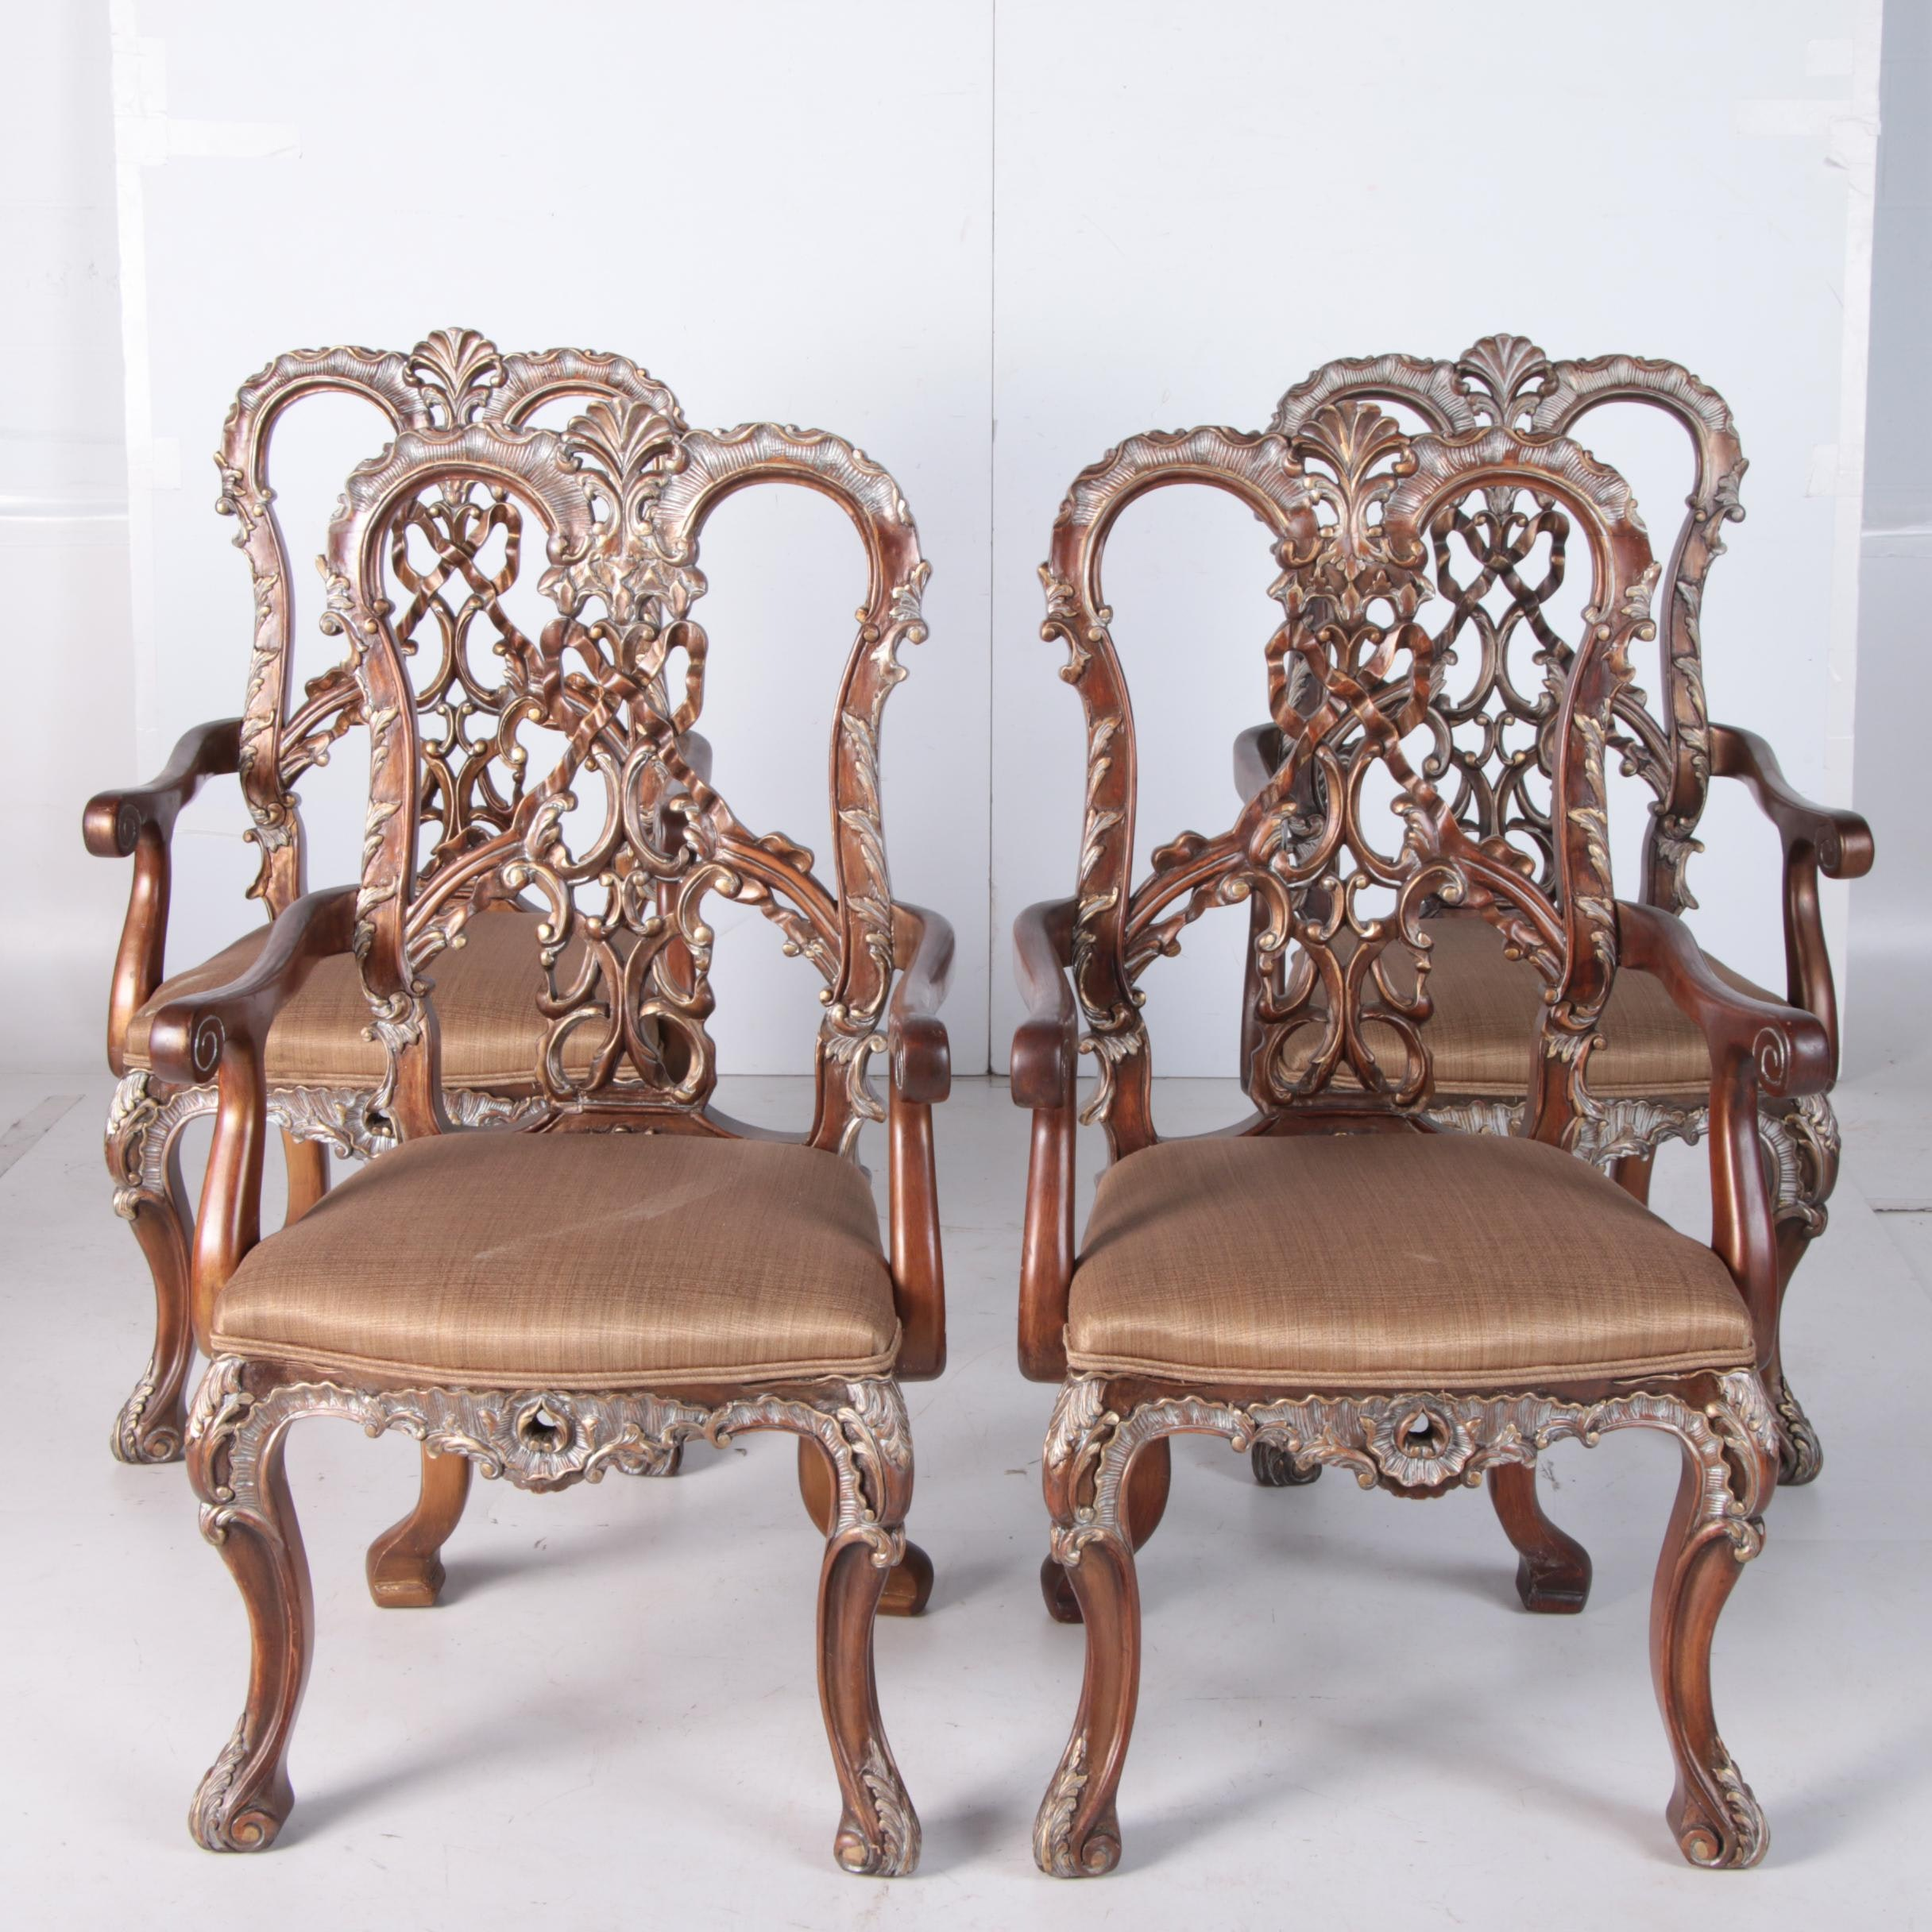 Rococo Style Painted Wooden Armchairs, 20th Century